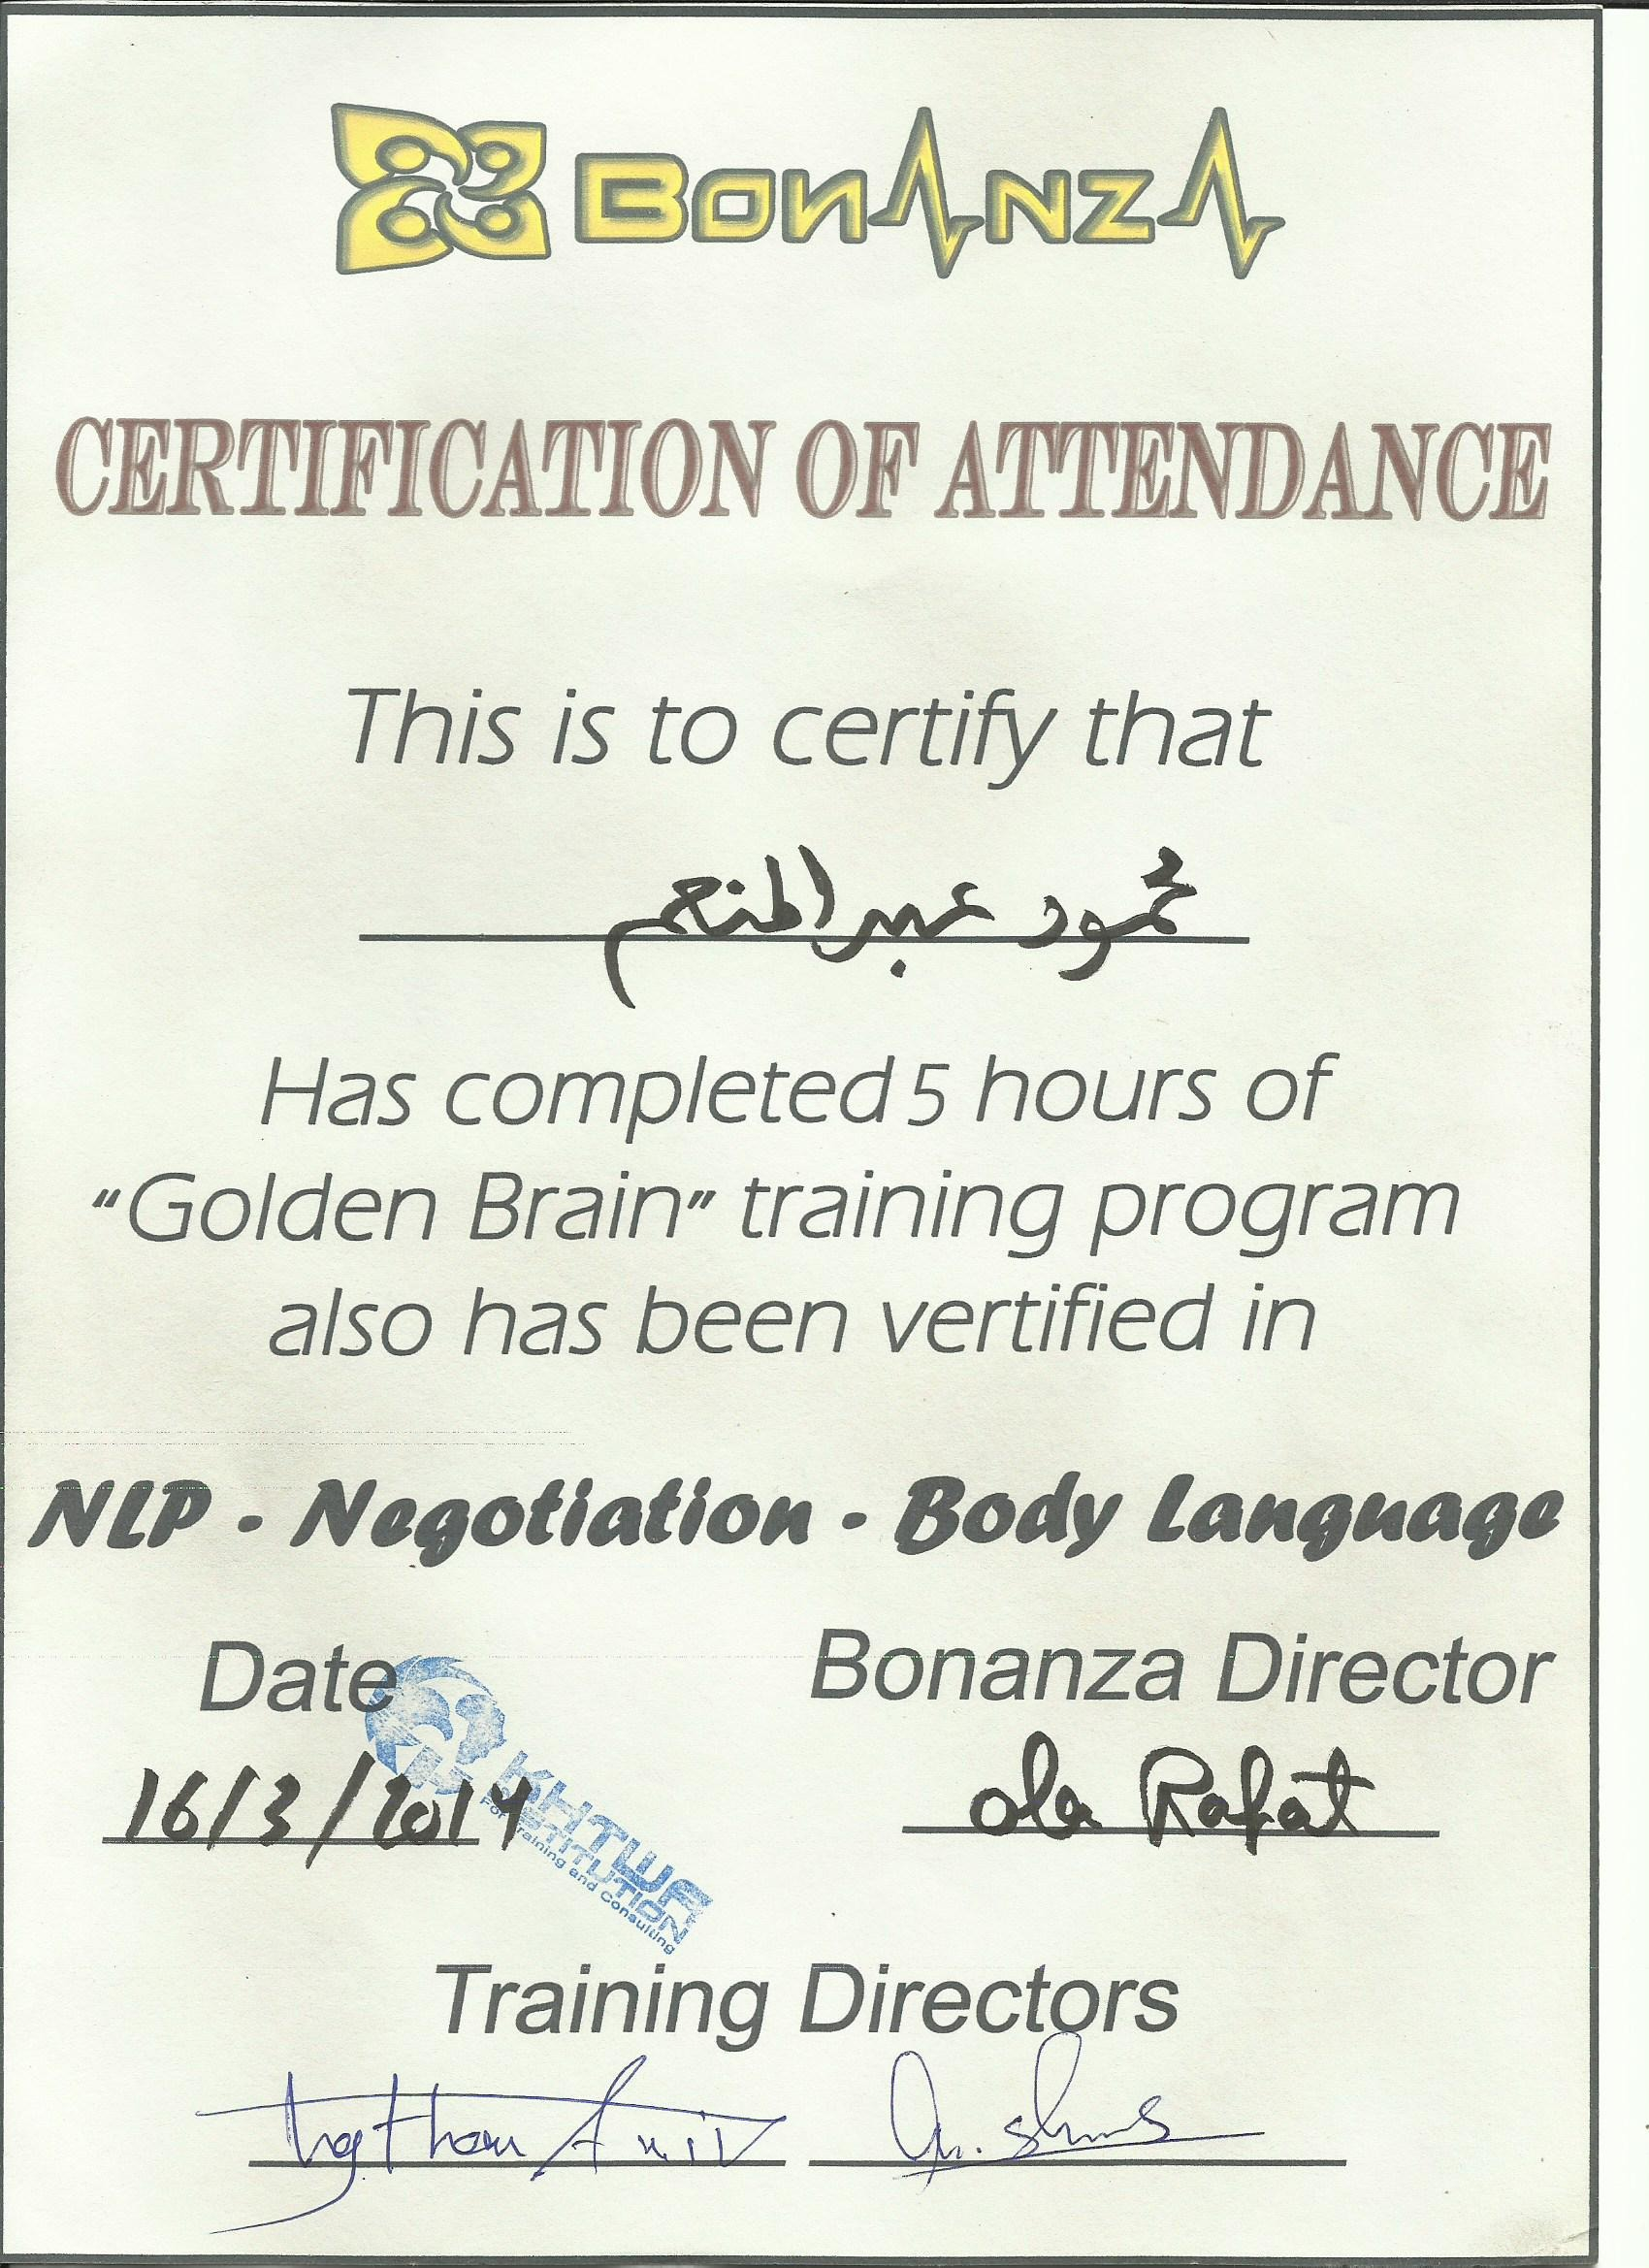 Mahmoud abdel moneim abdul majeed mohamed bayt nlpgotaition bodylanguage certificate xflitez Images